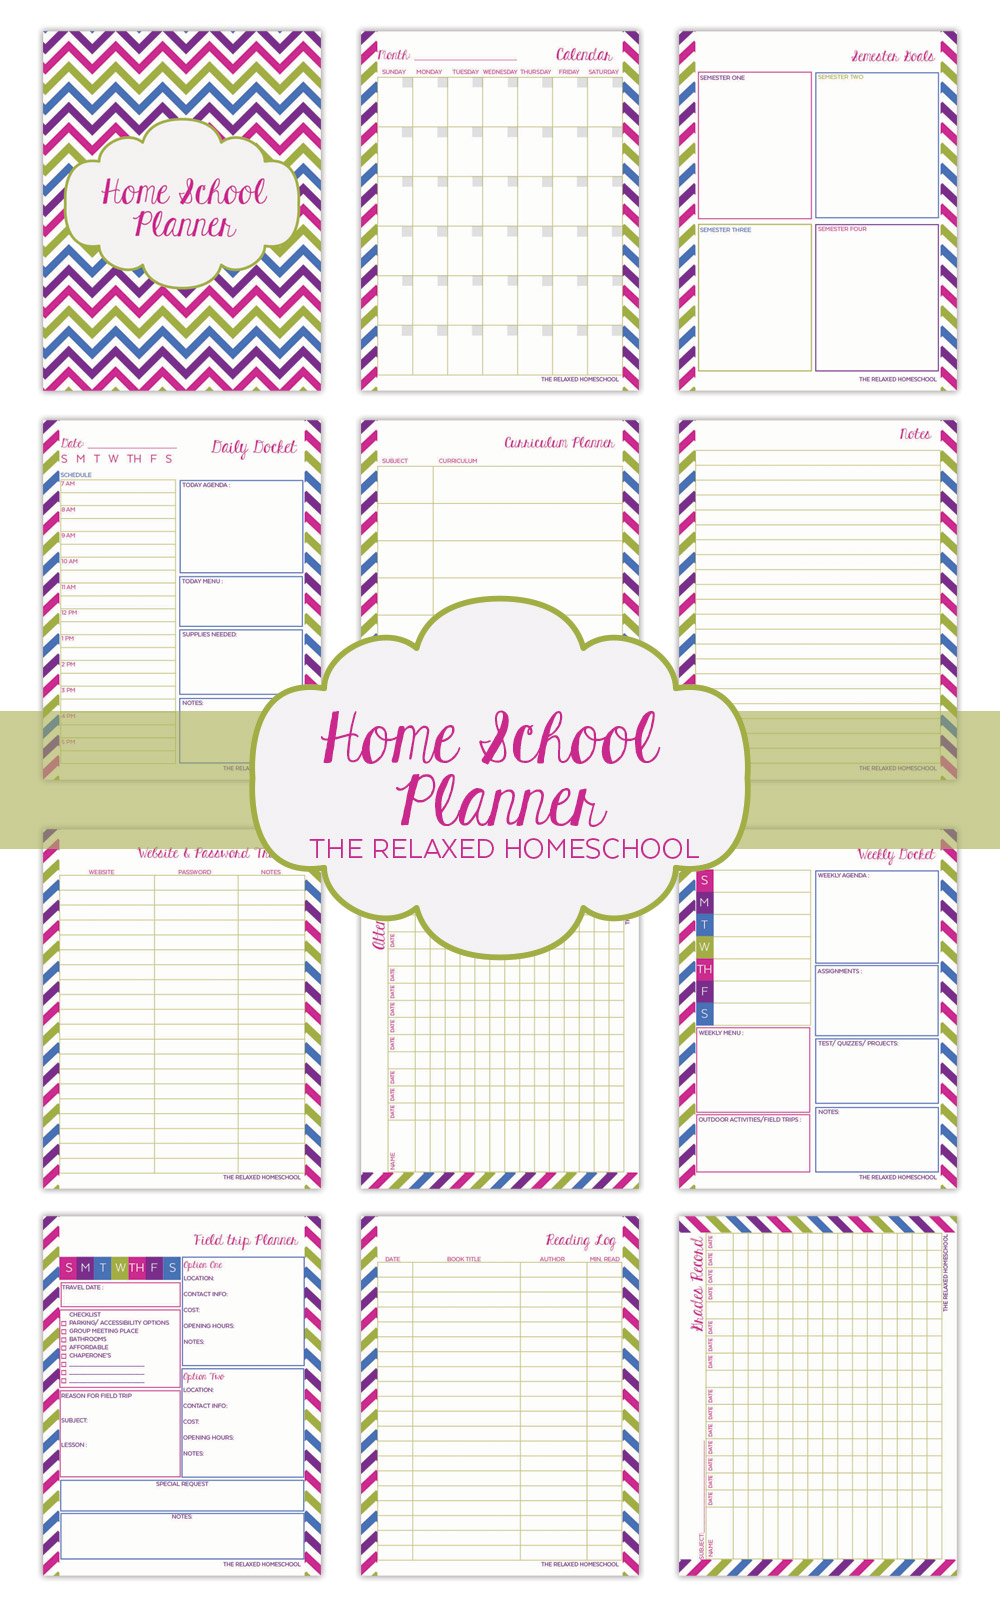 Diy Calendar Homeschool : Homeschool planner the relaxed